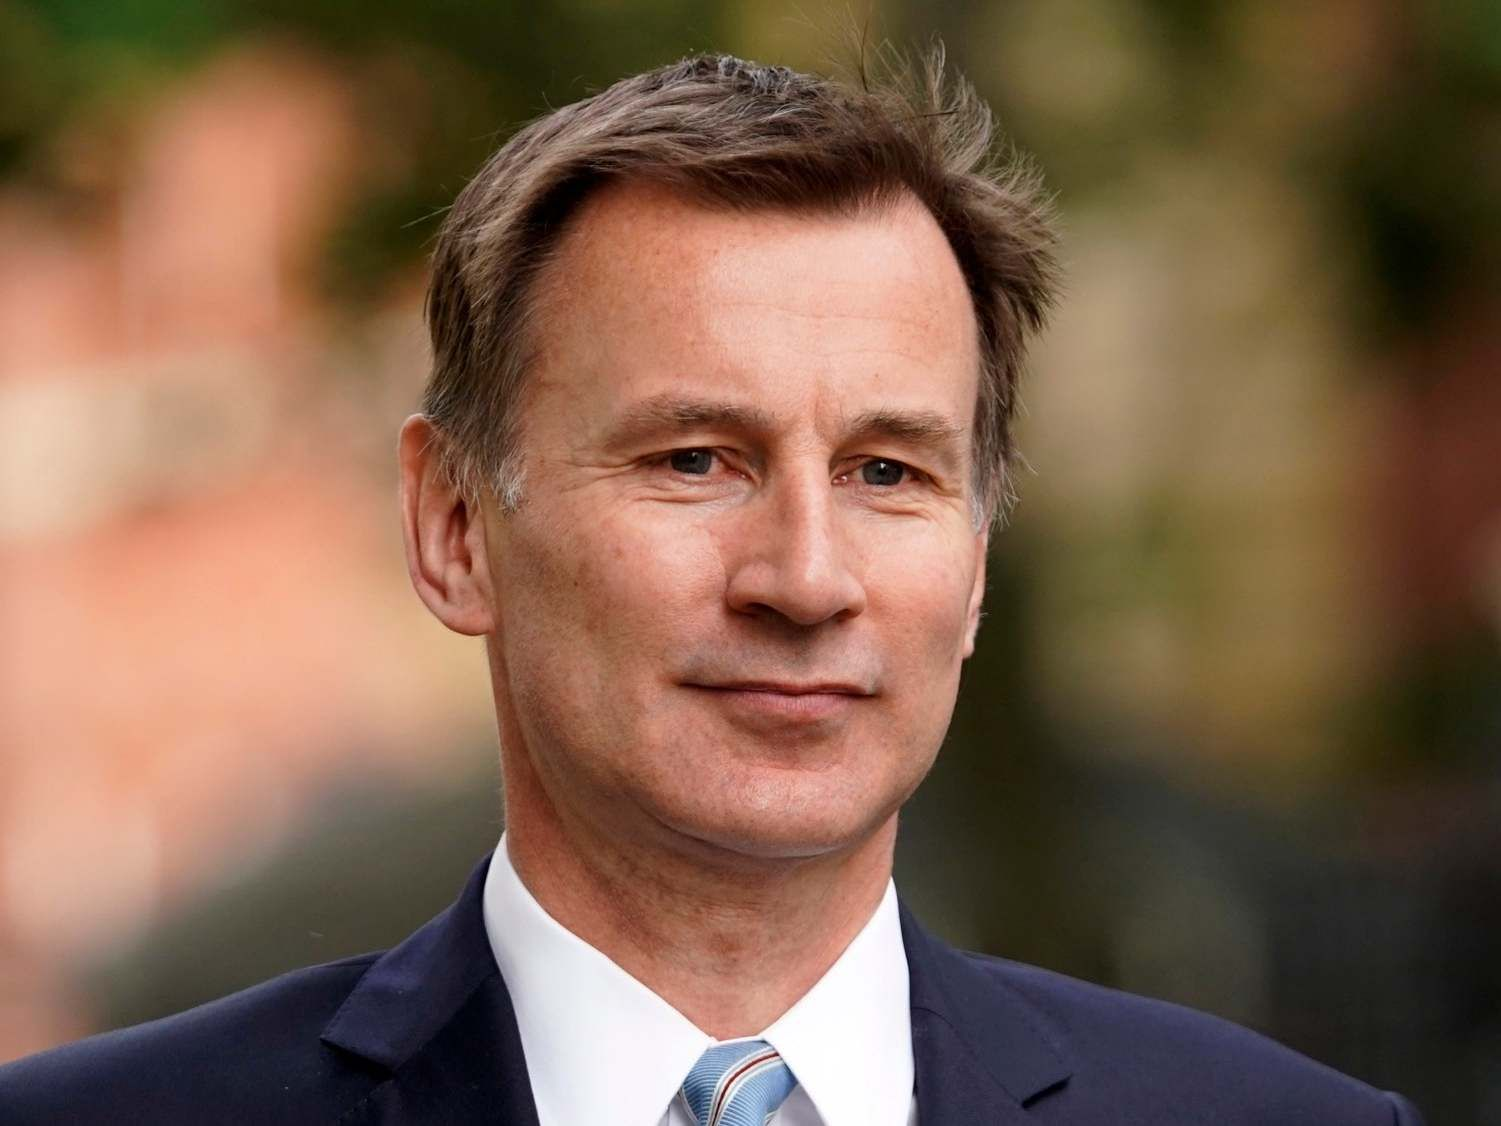 Jeremy Hunt calls for national inquiry into NHS maternity